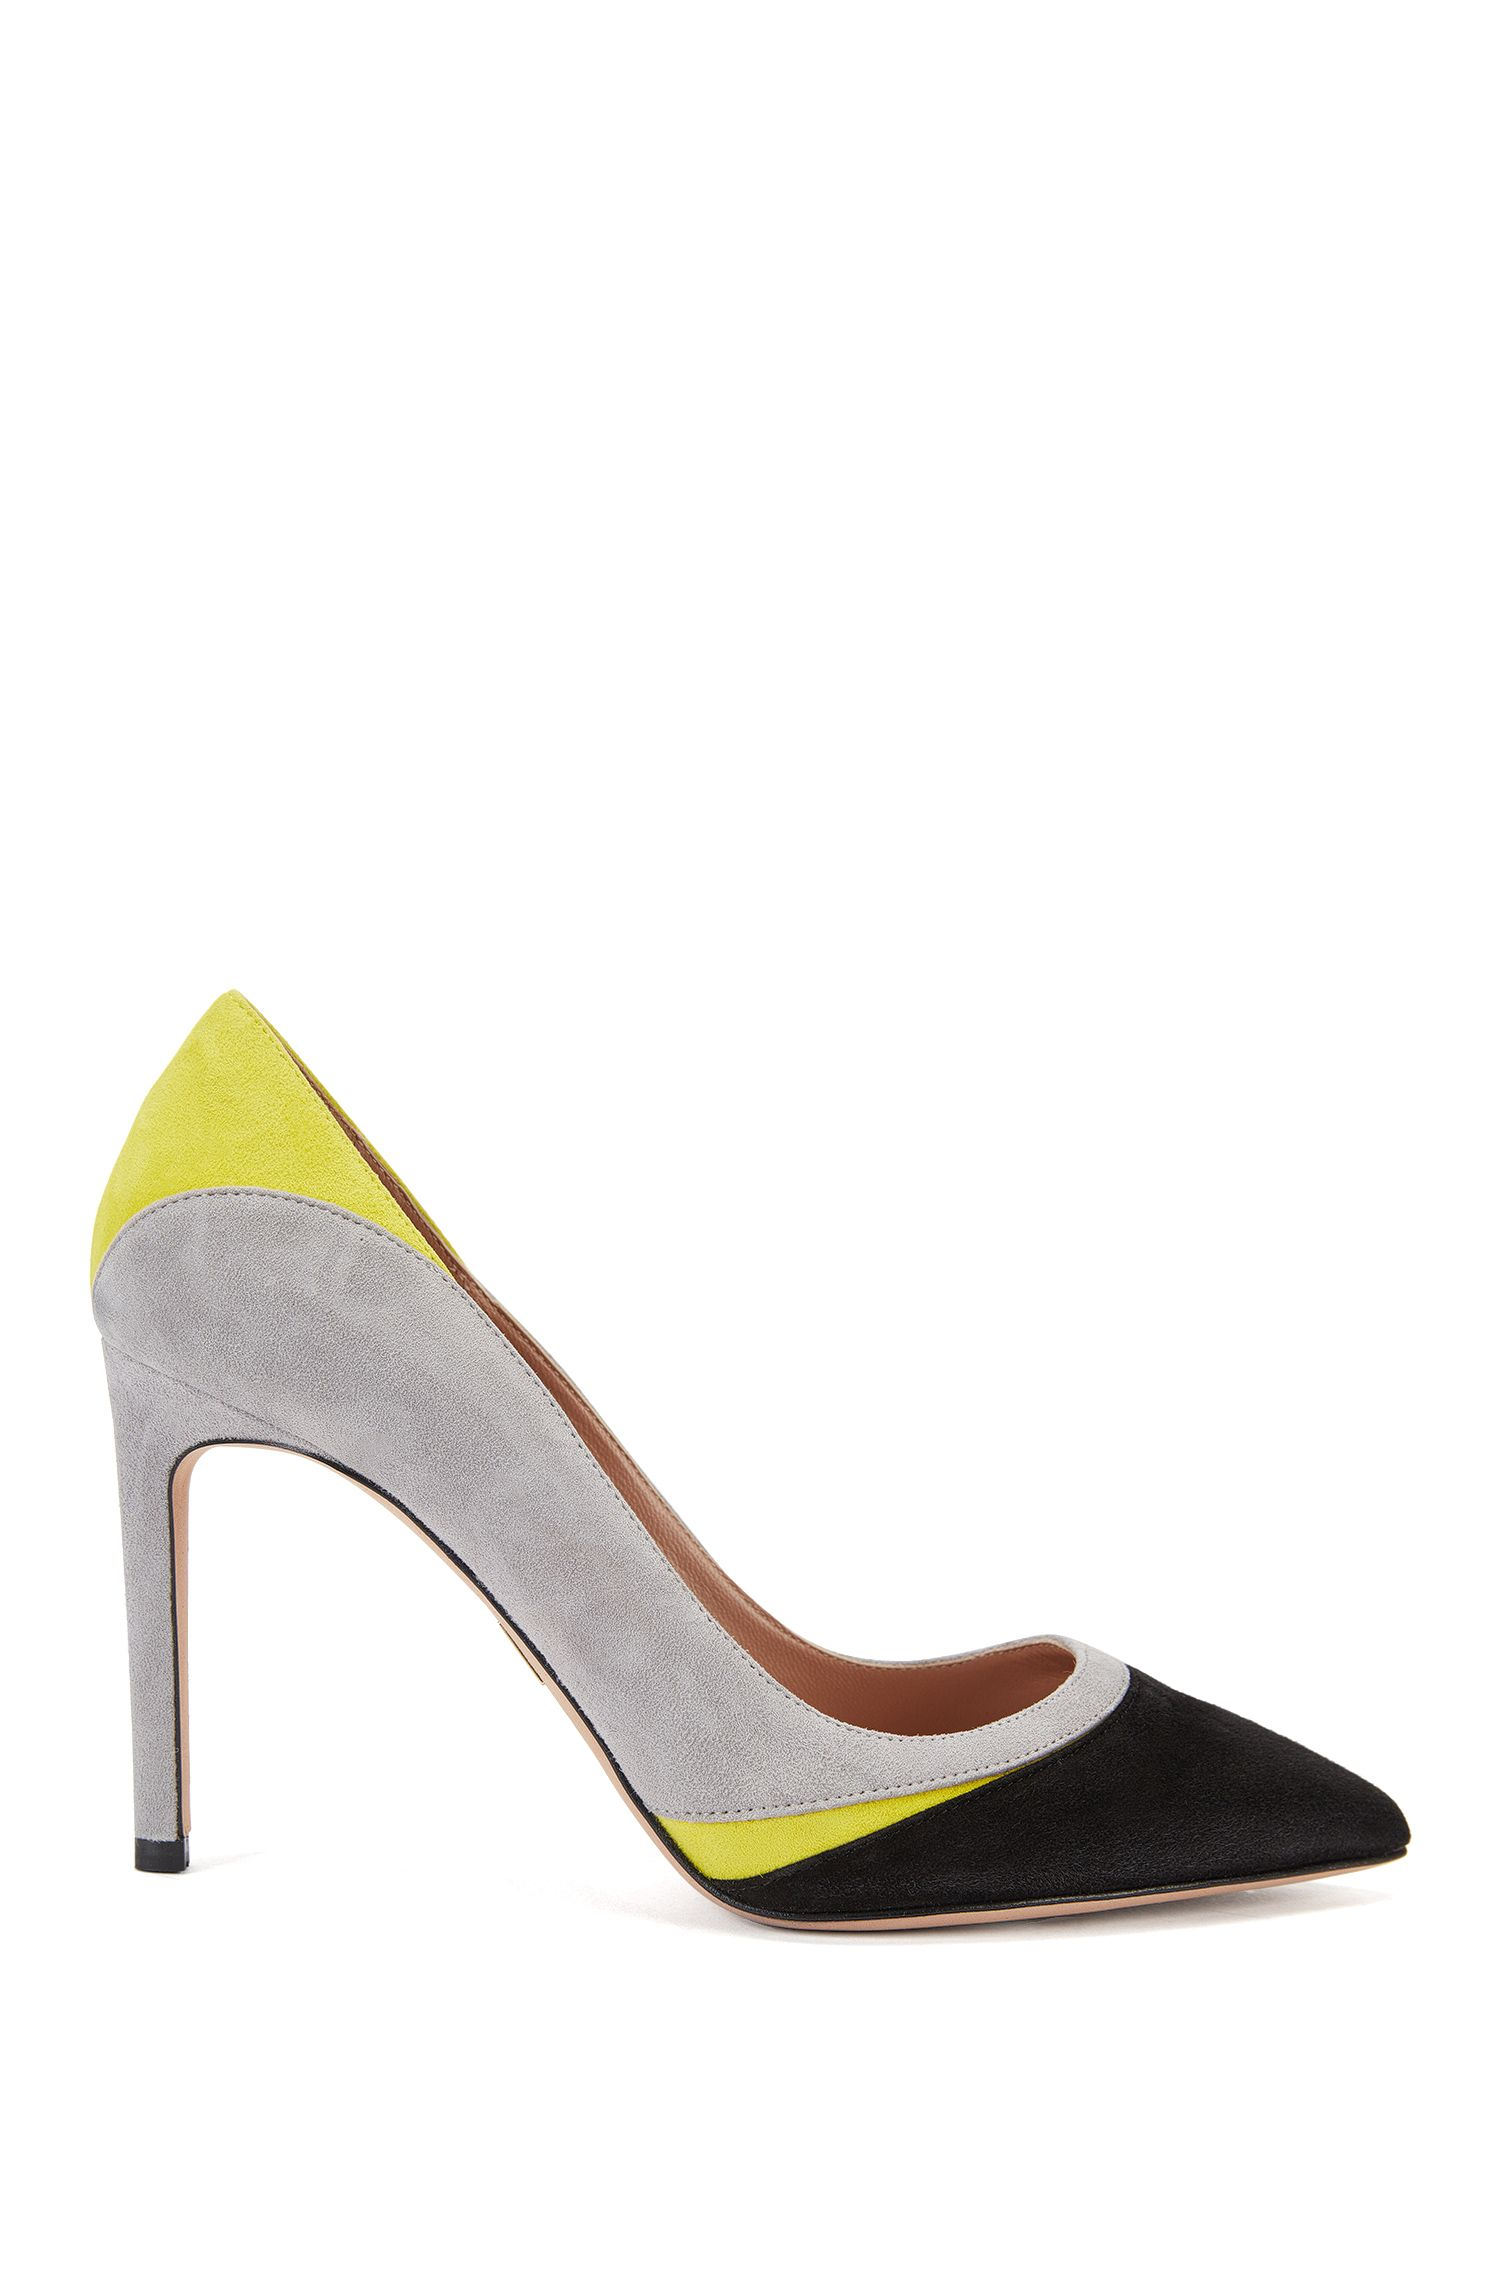 'Pointy Lace Mix' | Colorblock Suede Pump